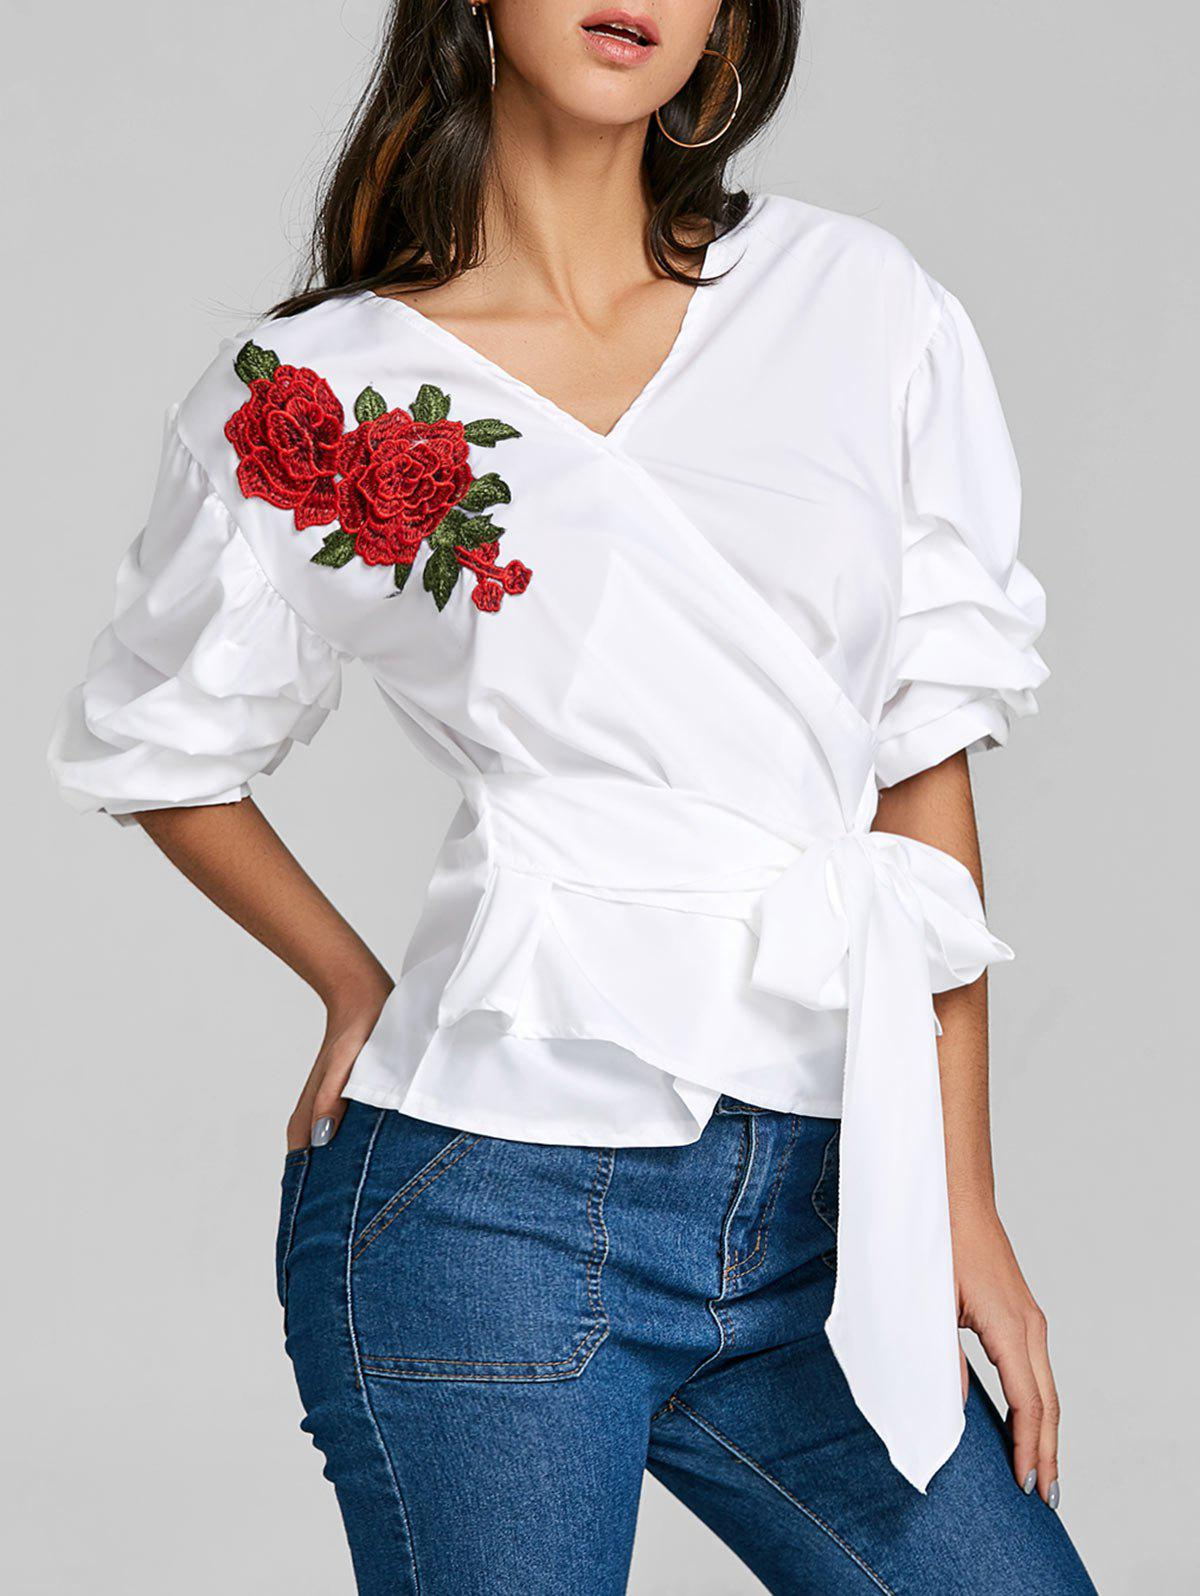 Striped Bowknot Embroidered Blouse contrast embroidered mesh yoke bow tie striped blouse